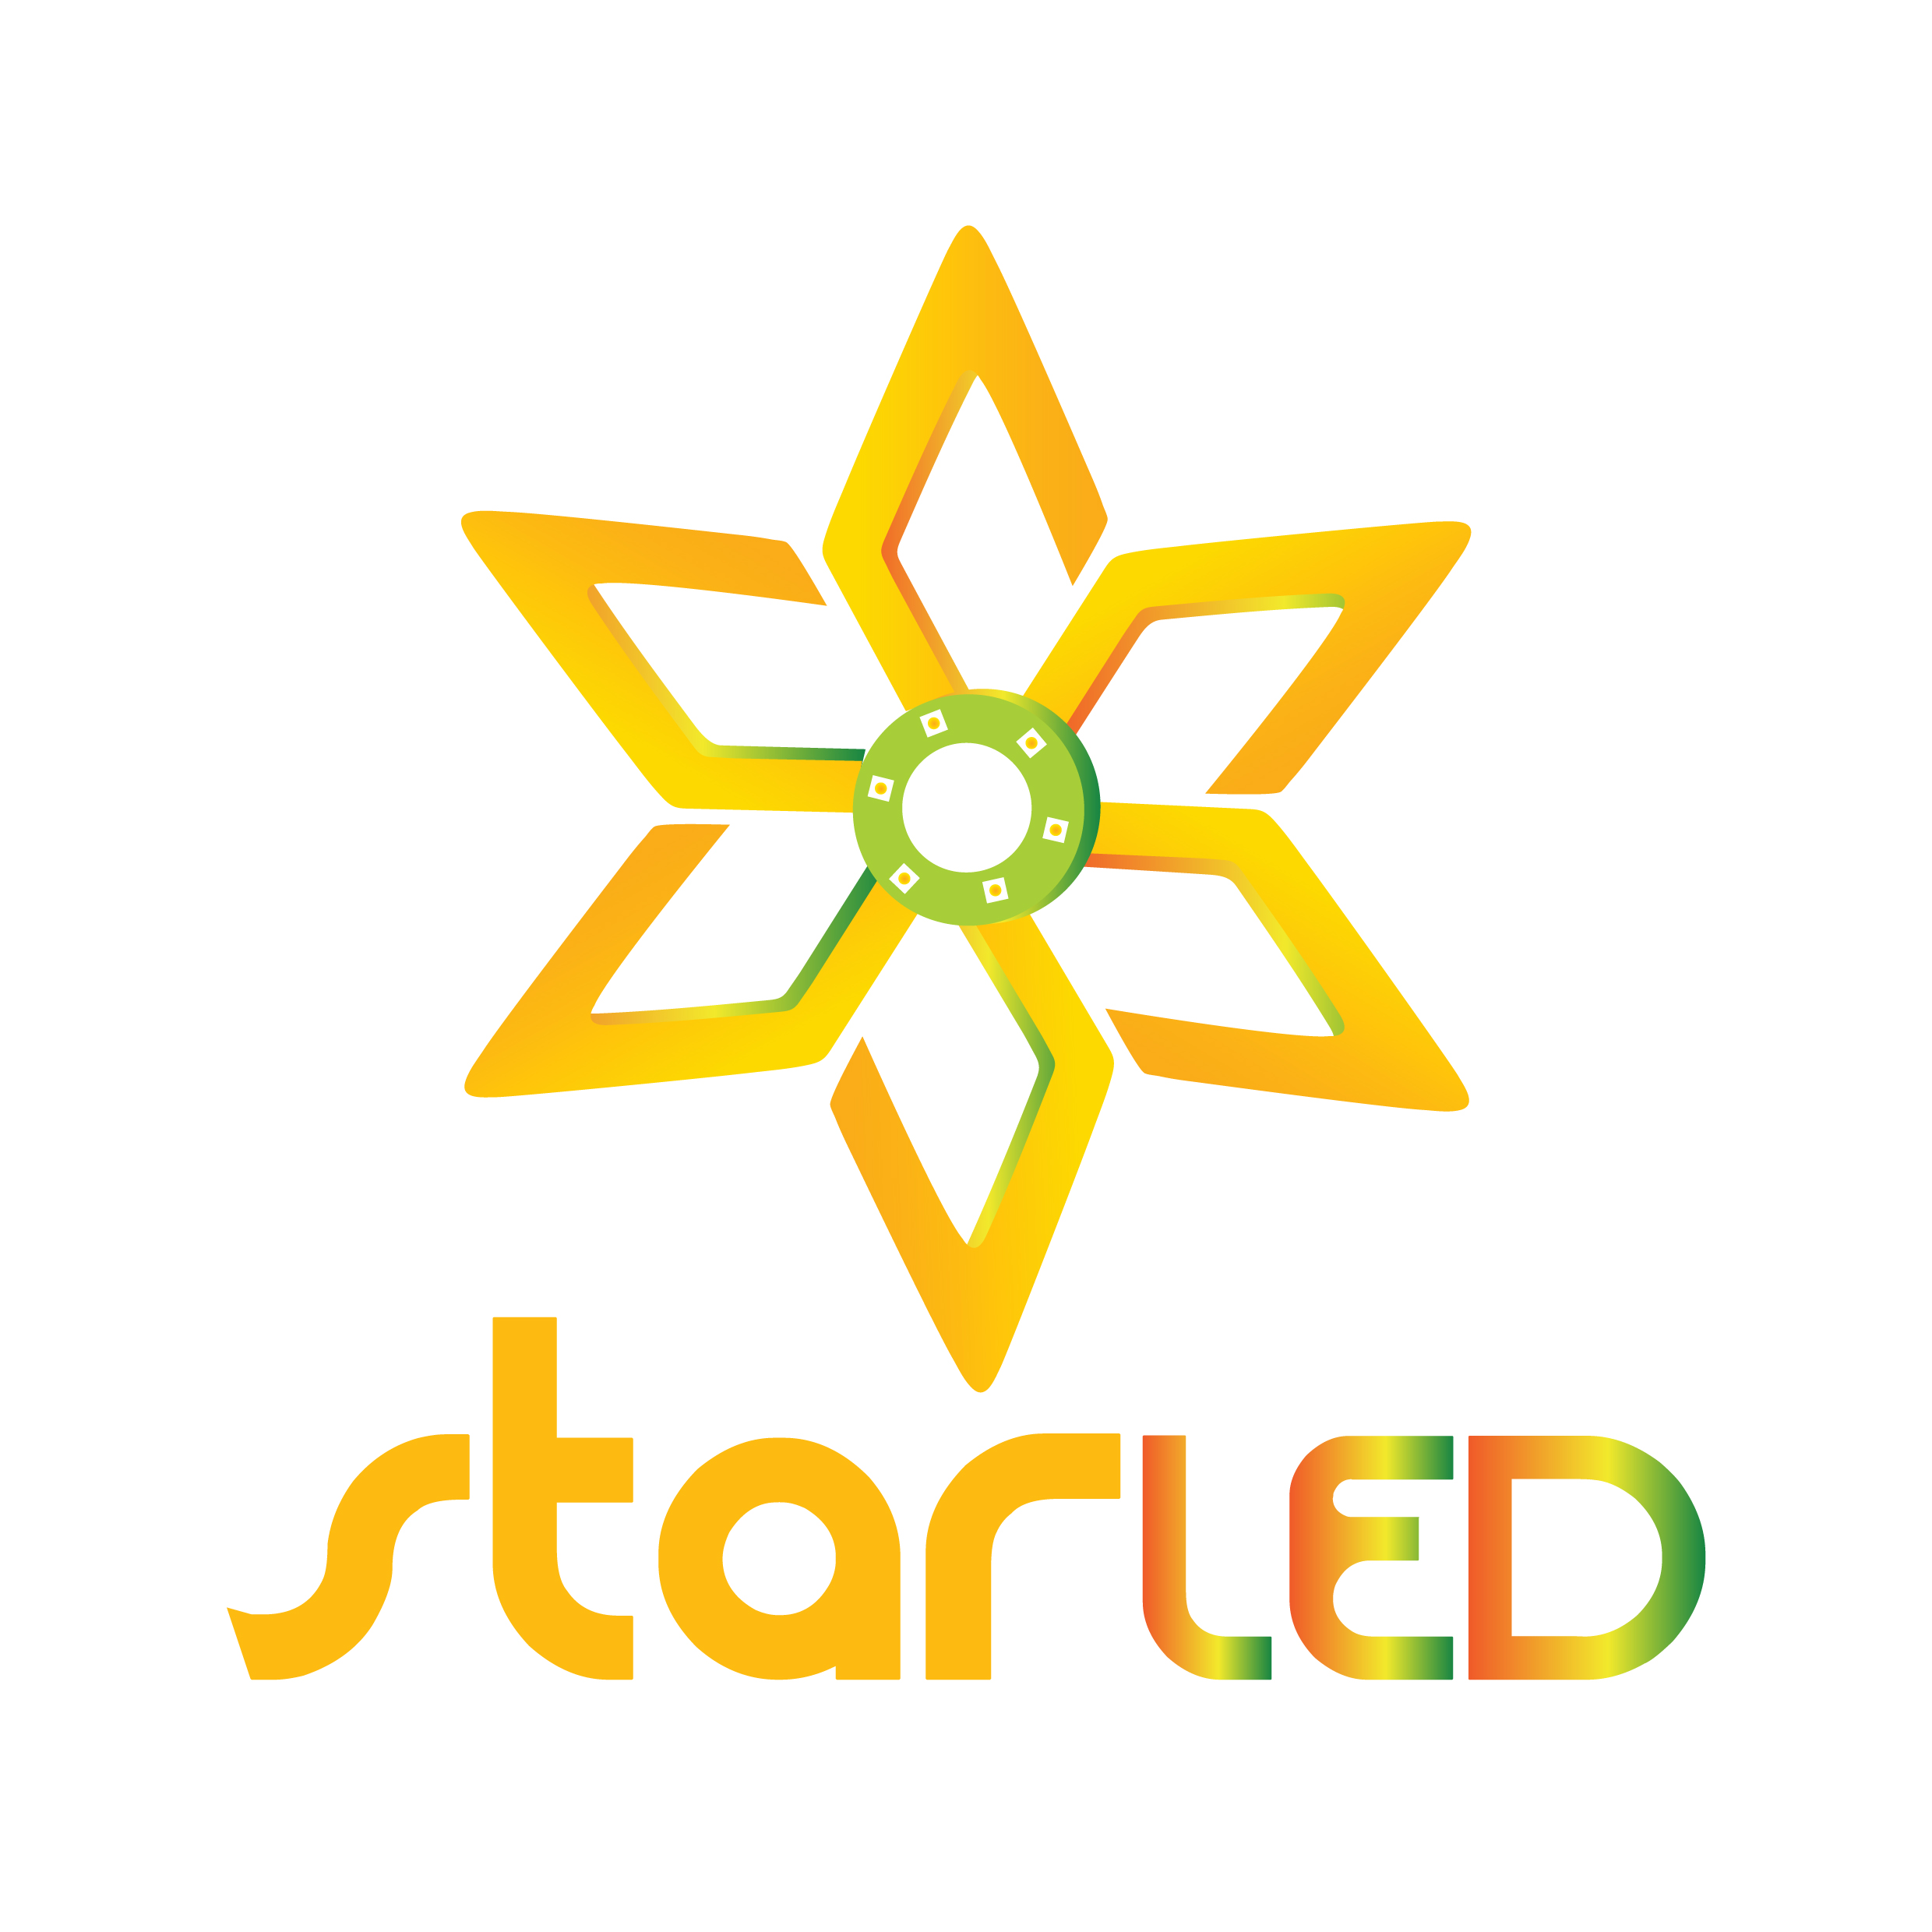 Starled products